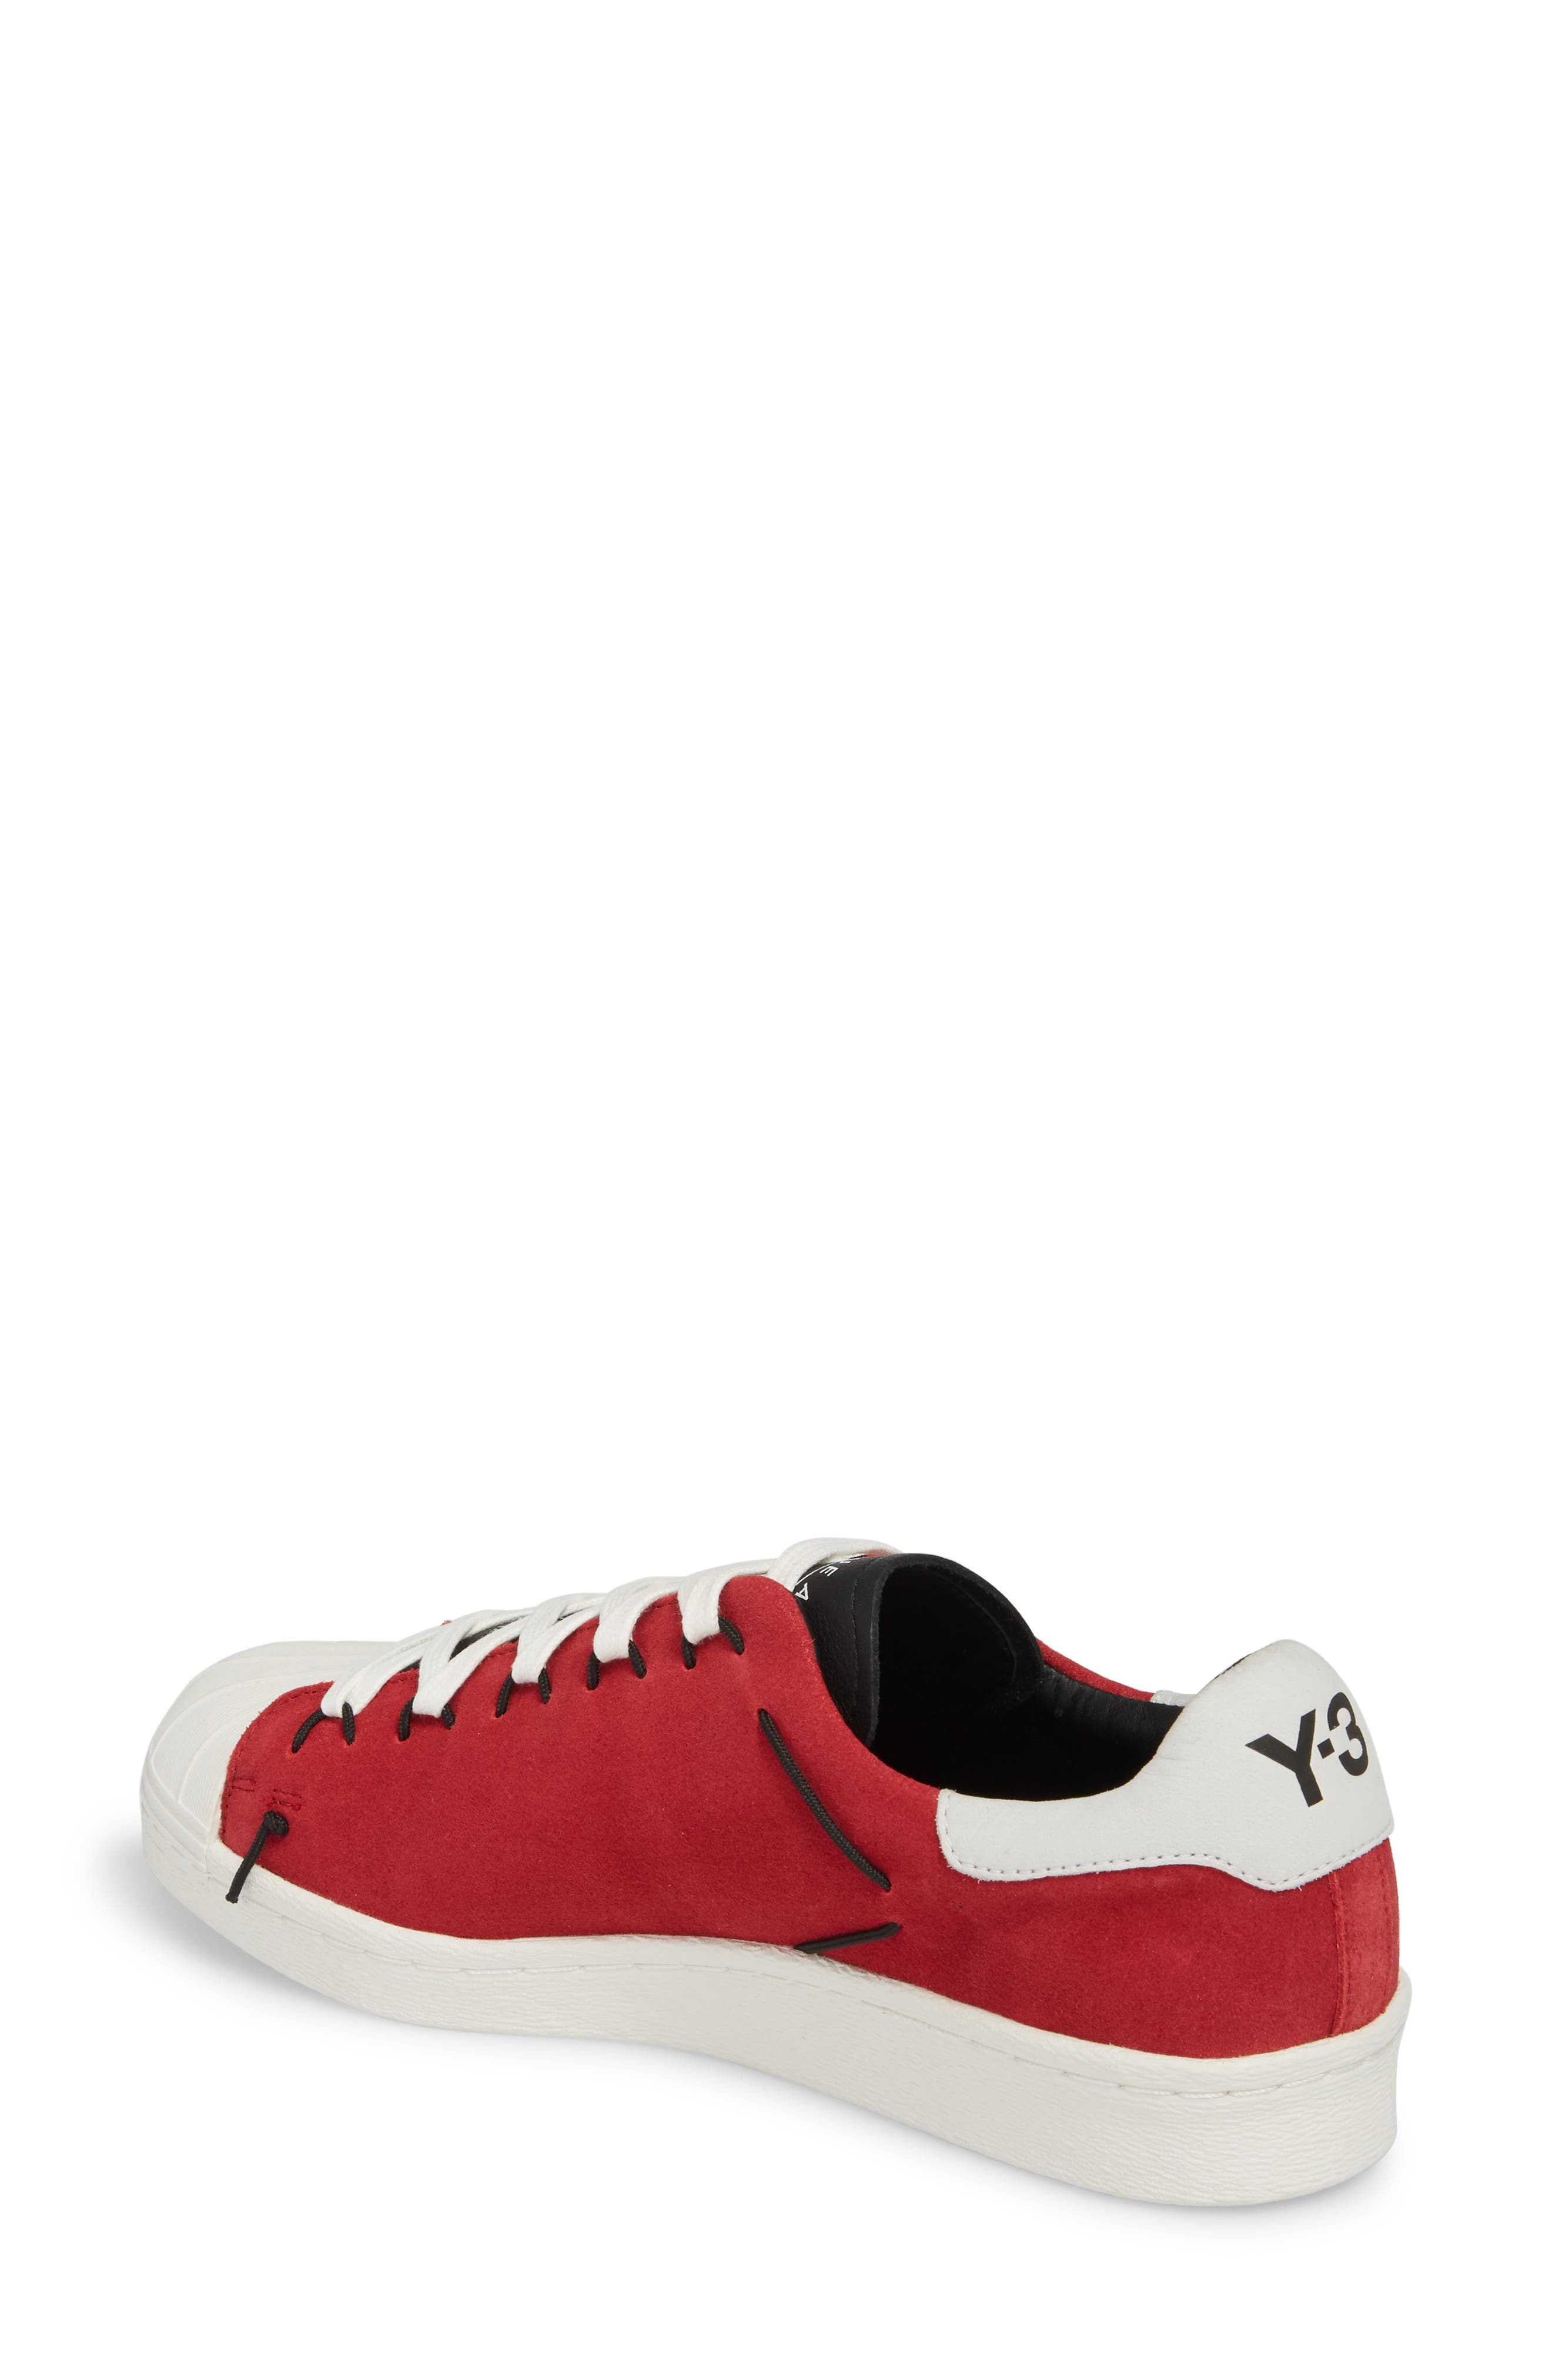 x adidas Super Knot Low Top Sneaker,                             Alternate thumbnail 2, color,                             602